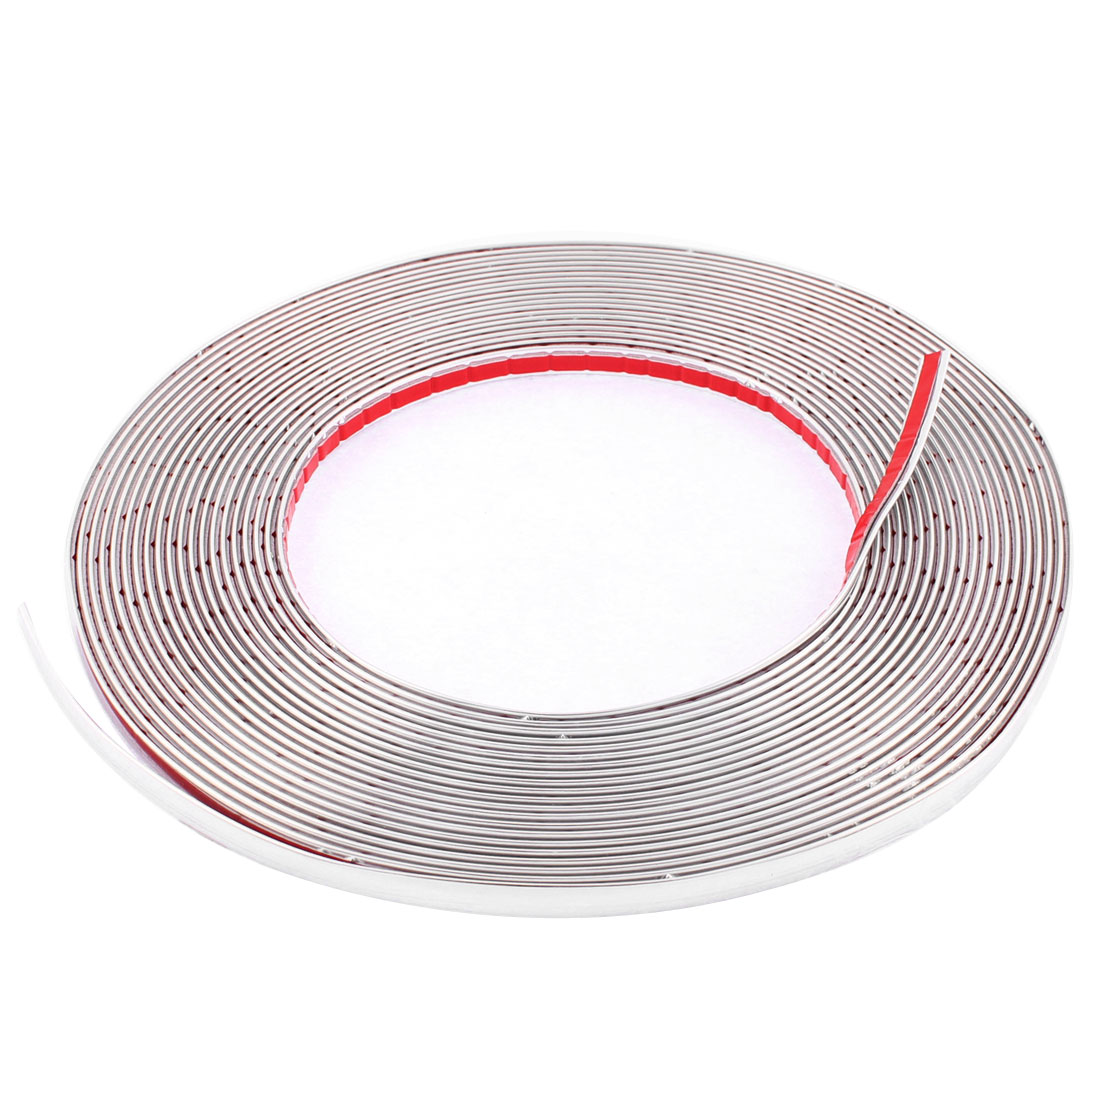 Car Auto Wheel Sticking Soft PVC Moulding Trim Strip Decoration 9mm Width